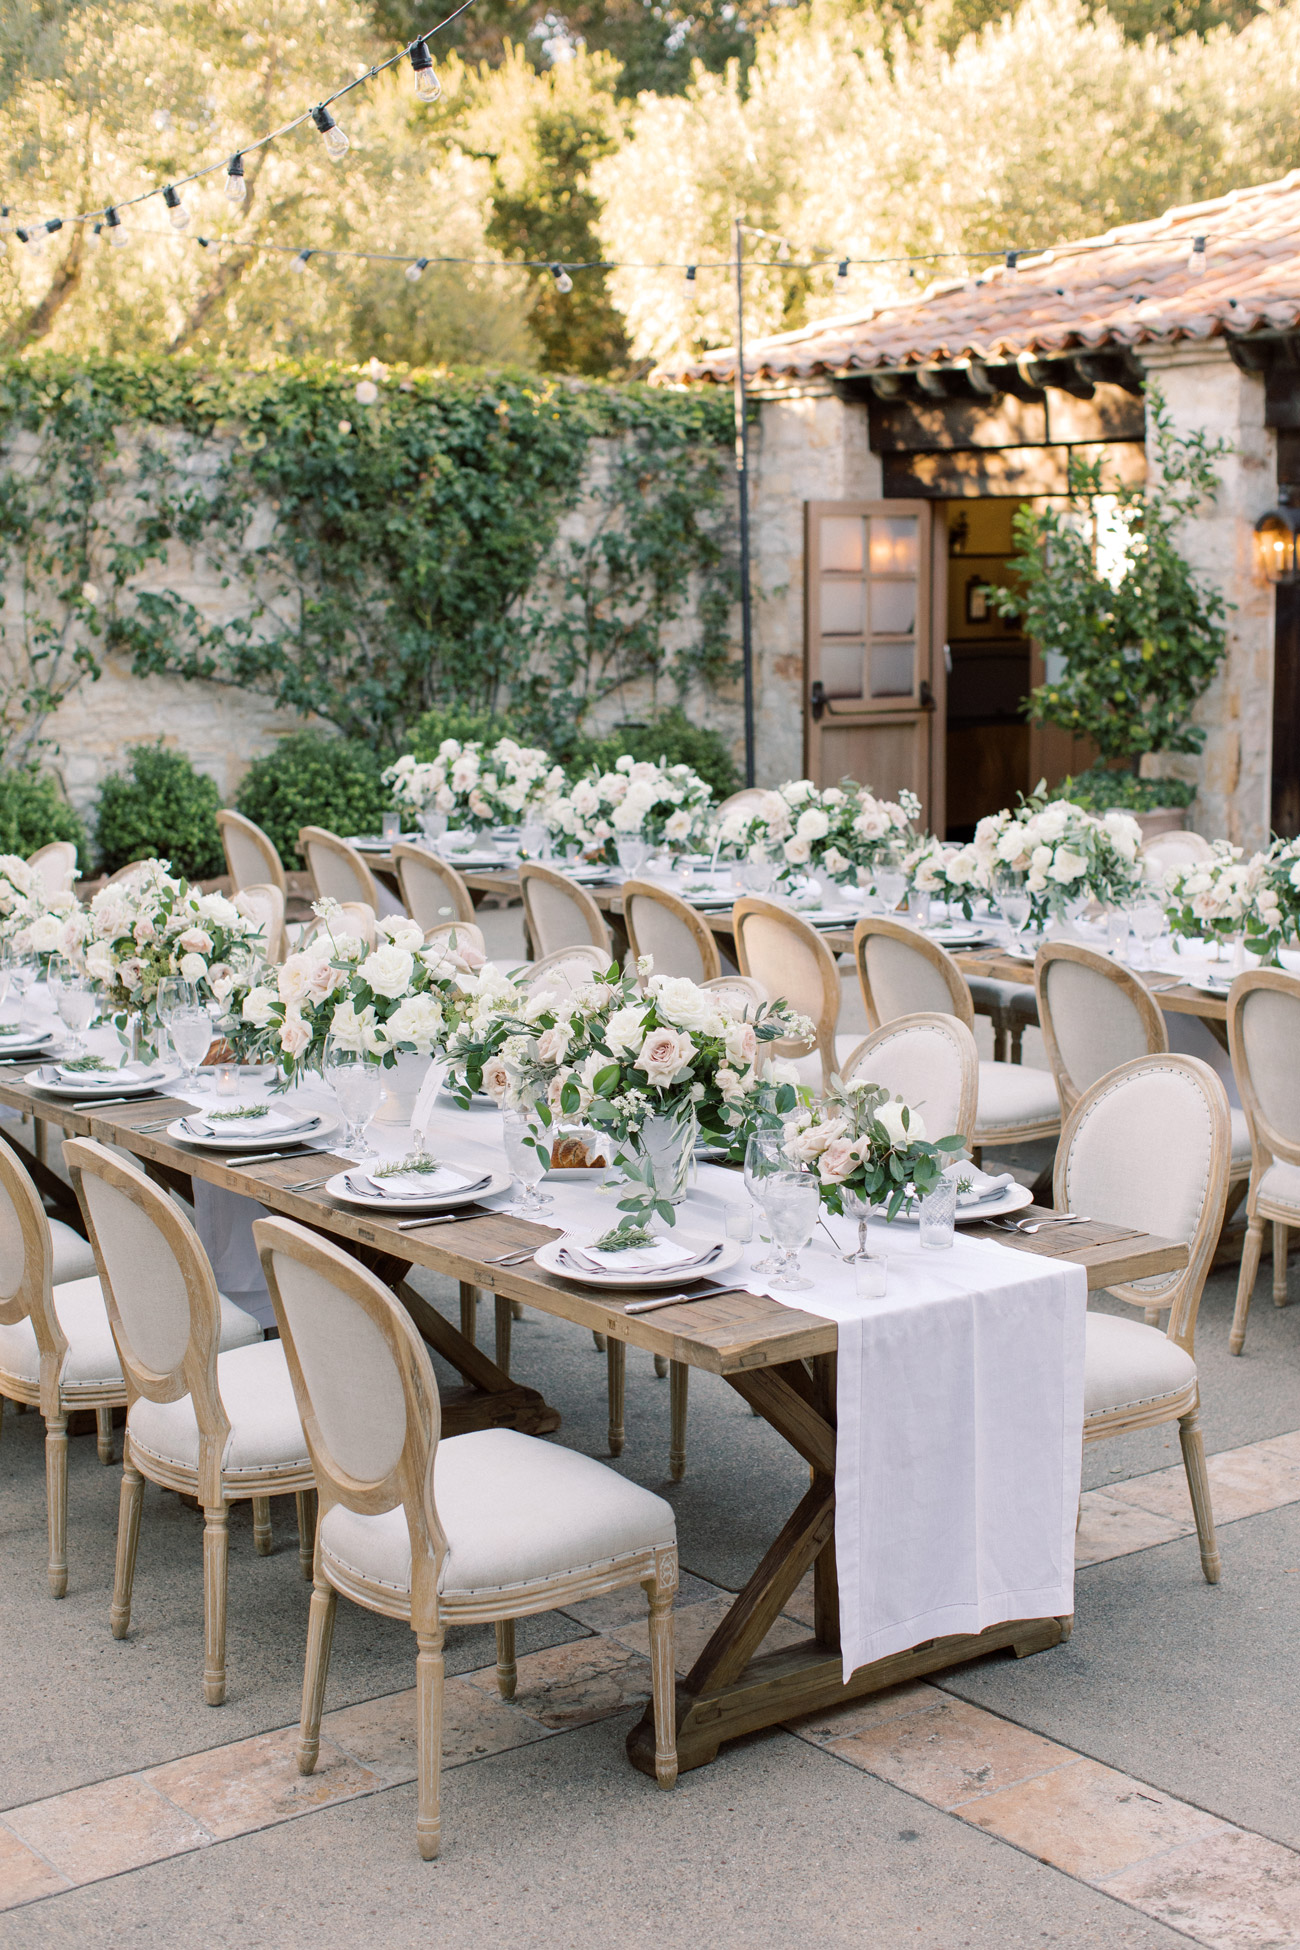 reception tables with floral centerpieces and place settings